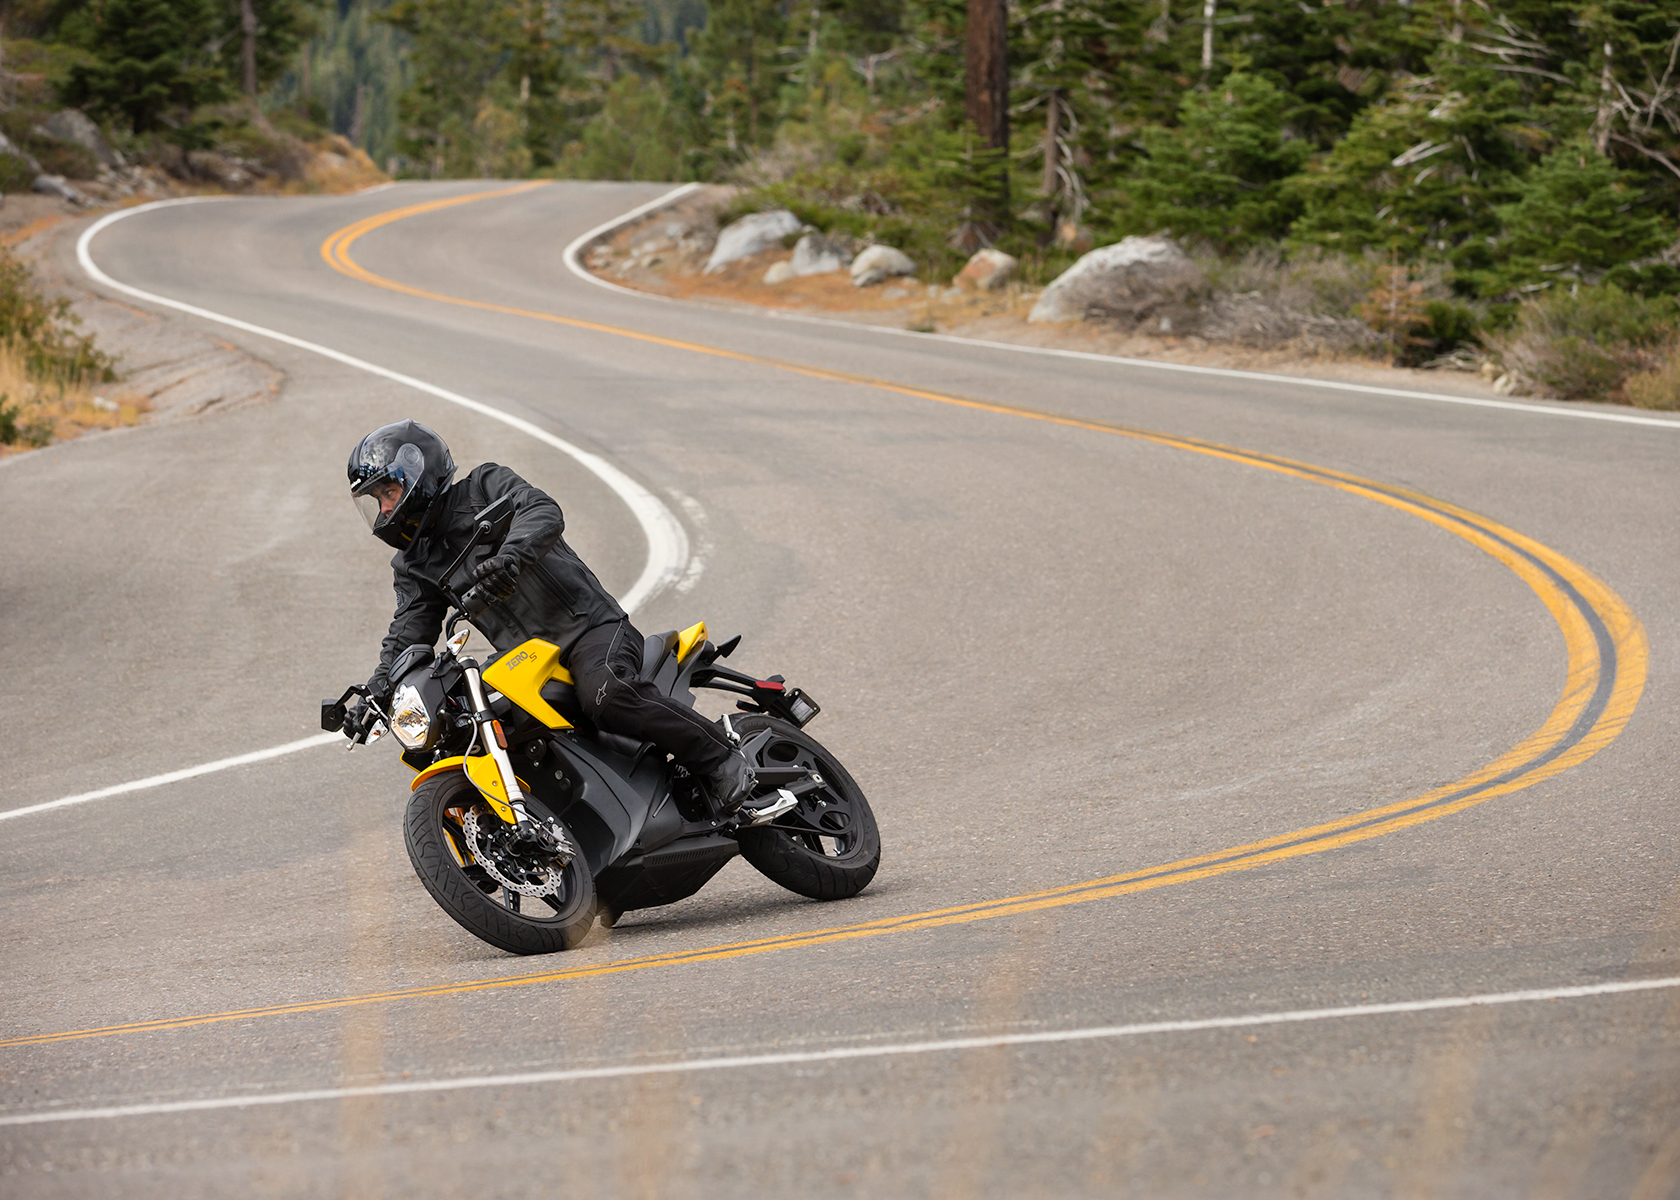 2014 Zero S Electric Motorcycle: